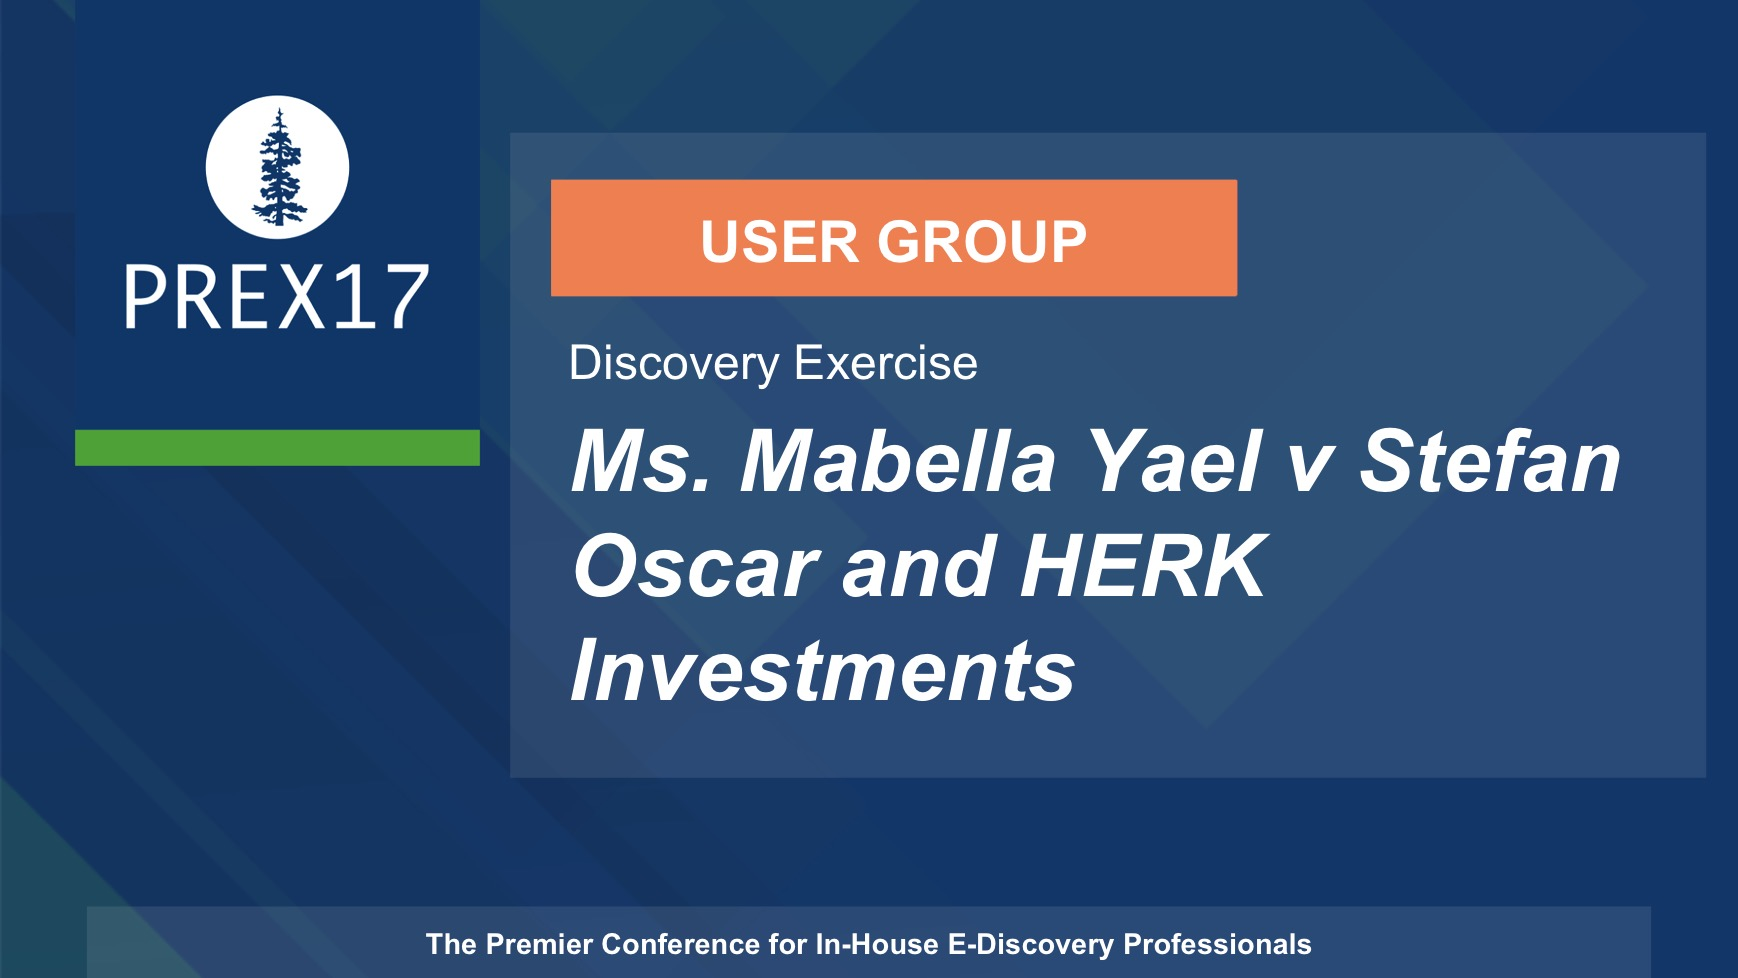 User Group (Discovery Exercise) Ms. Mabella Yael v Stefan Oscar and HERK Investments